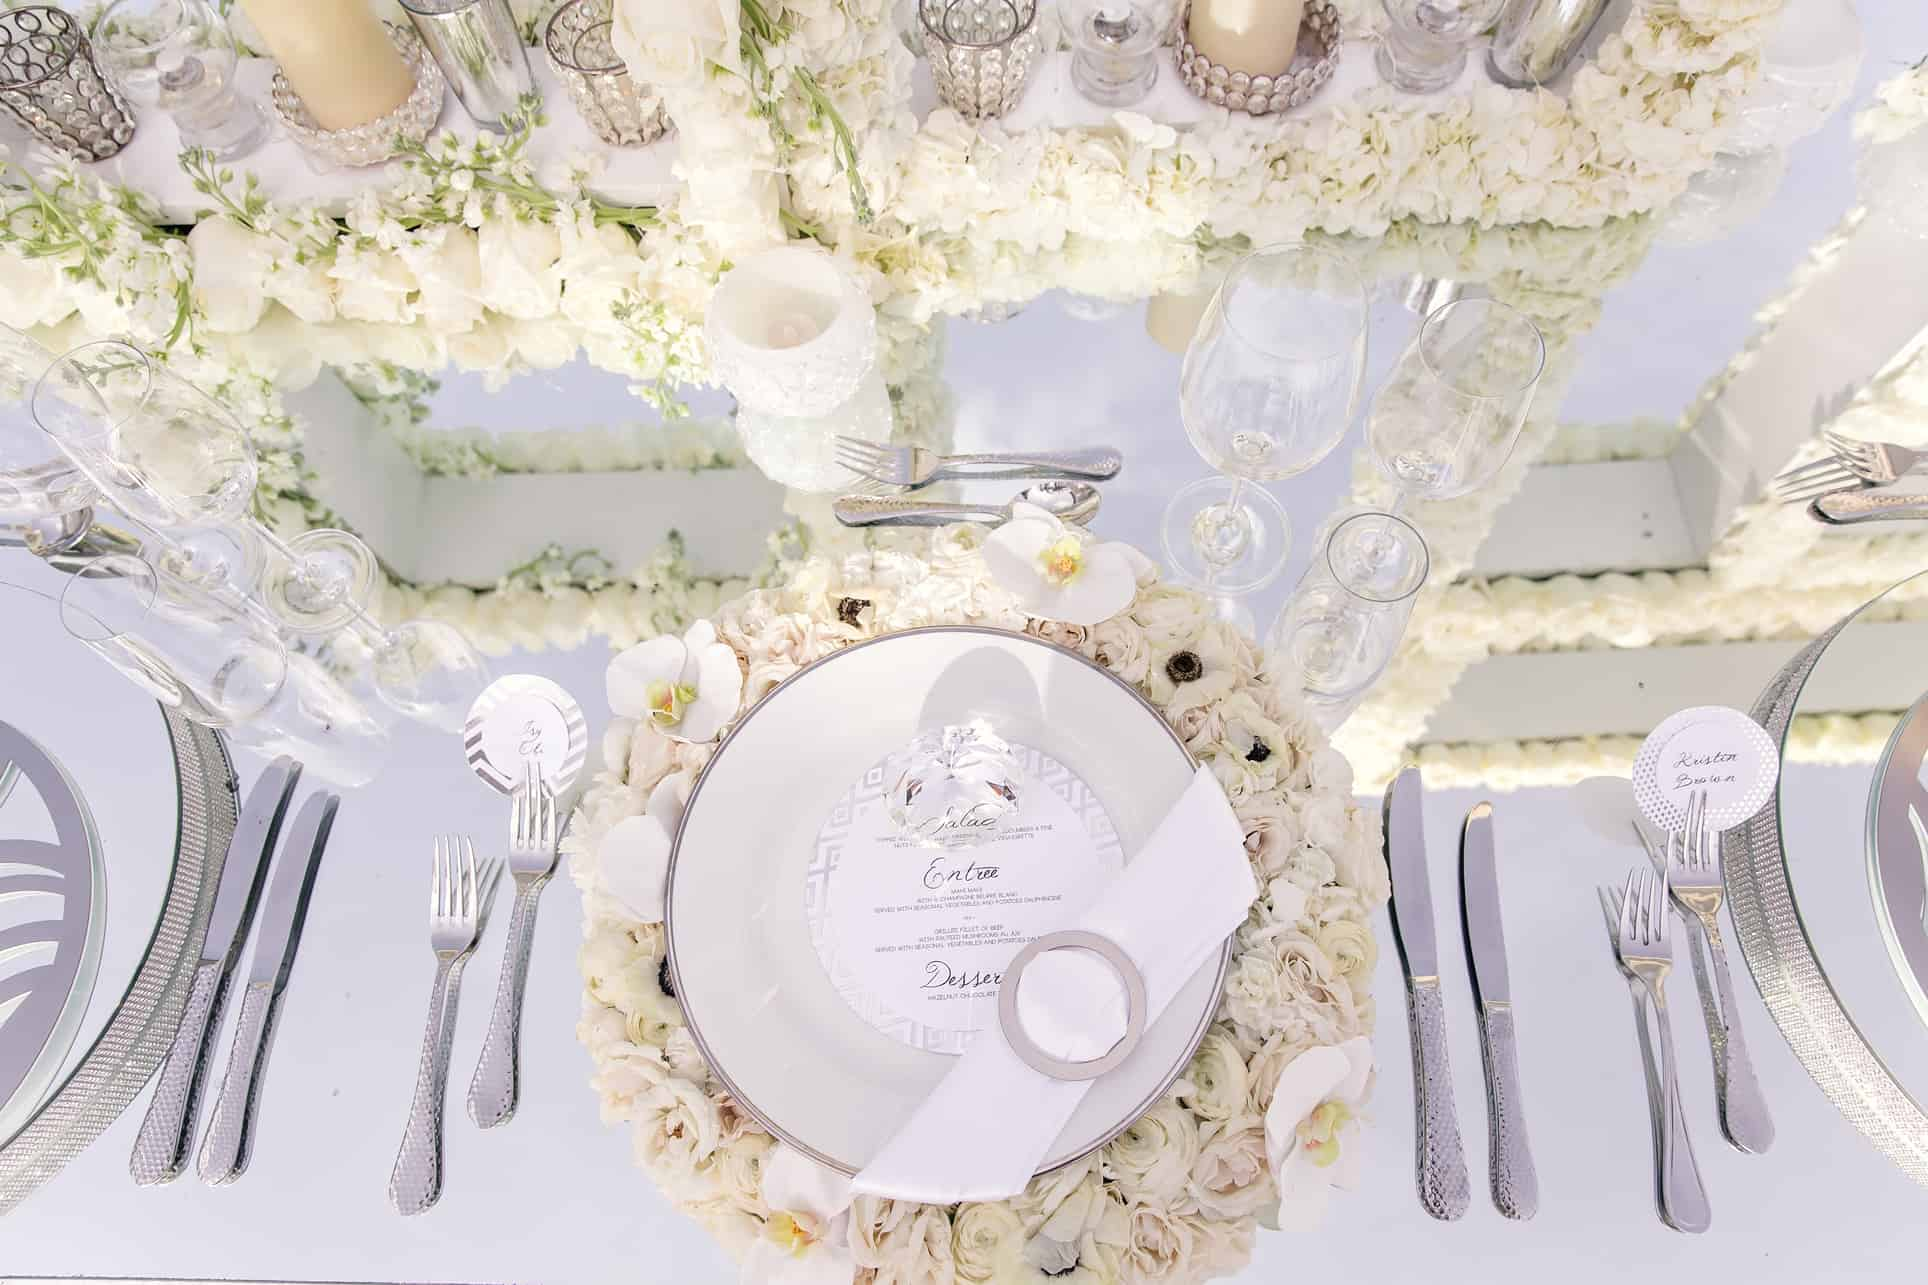 silver white luxurious wedding table place settings celebrations ltd cayman islands destination wedding